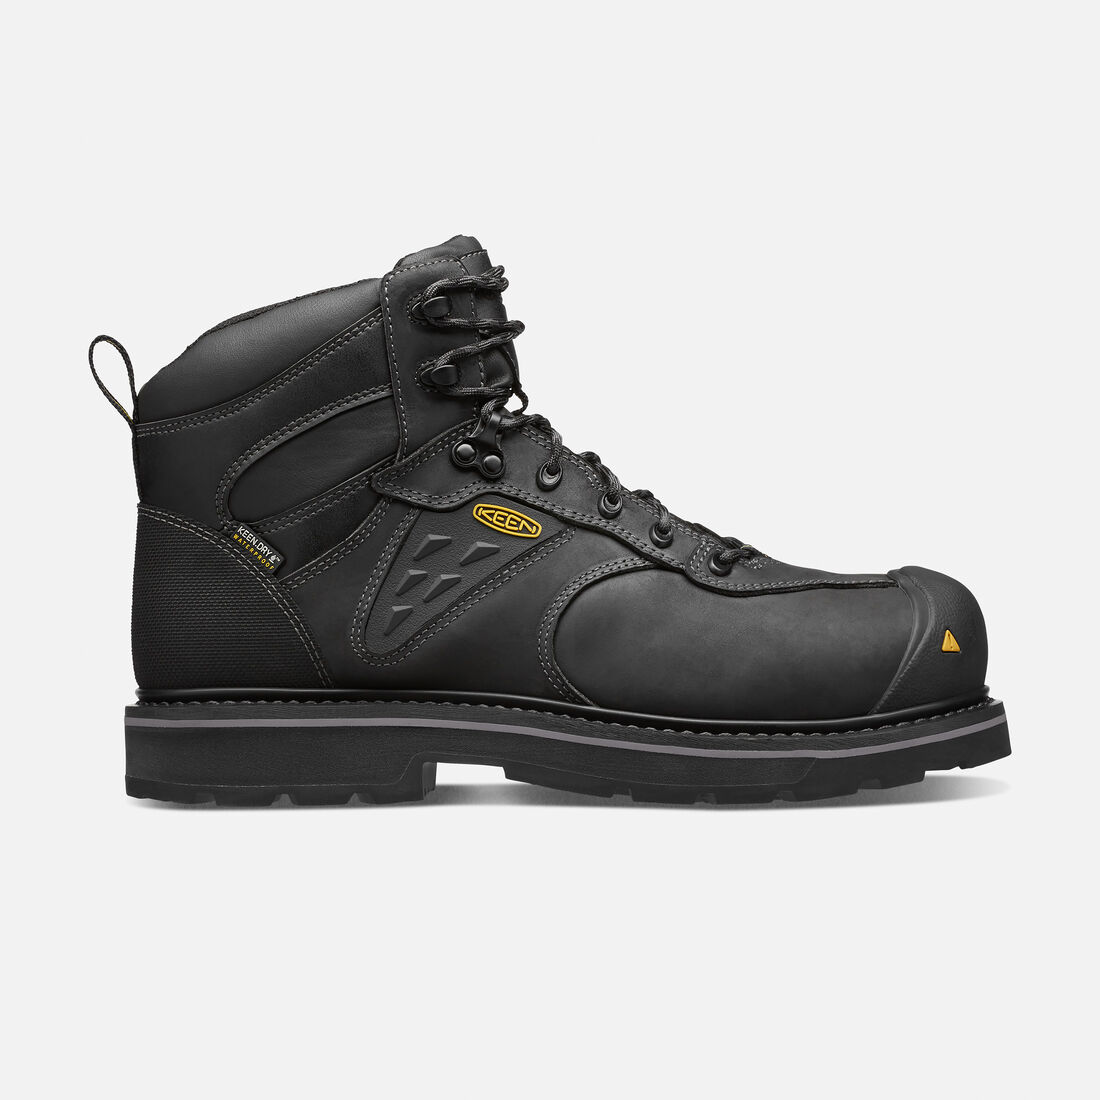 new arrivals 12c88 c4eb7 Men s Tacoma Waterproof (Composite Toe) in Black - large view.